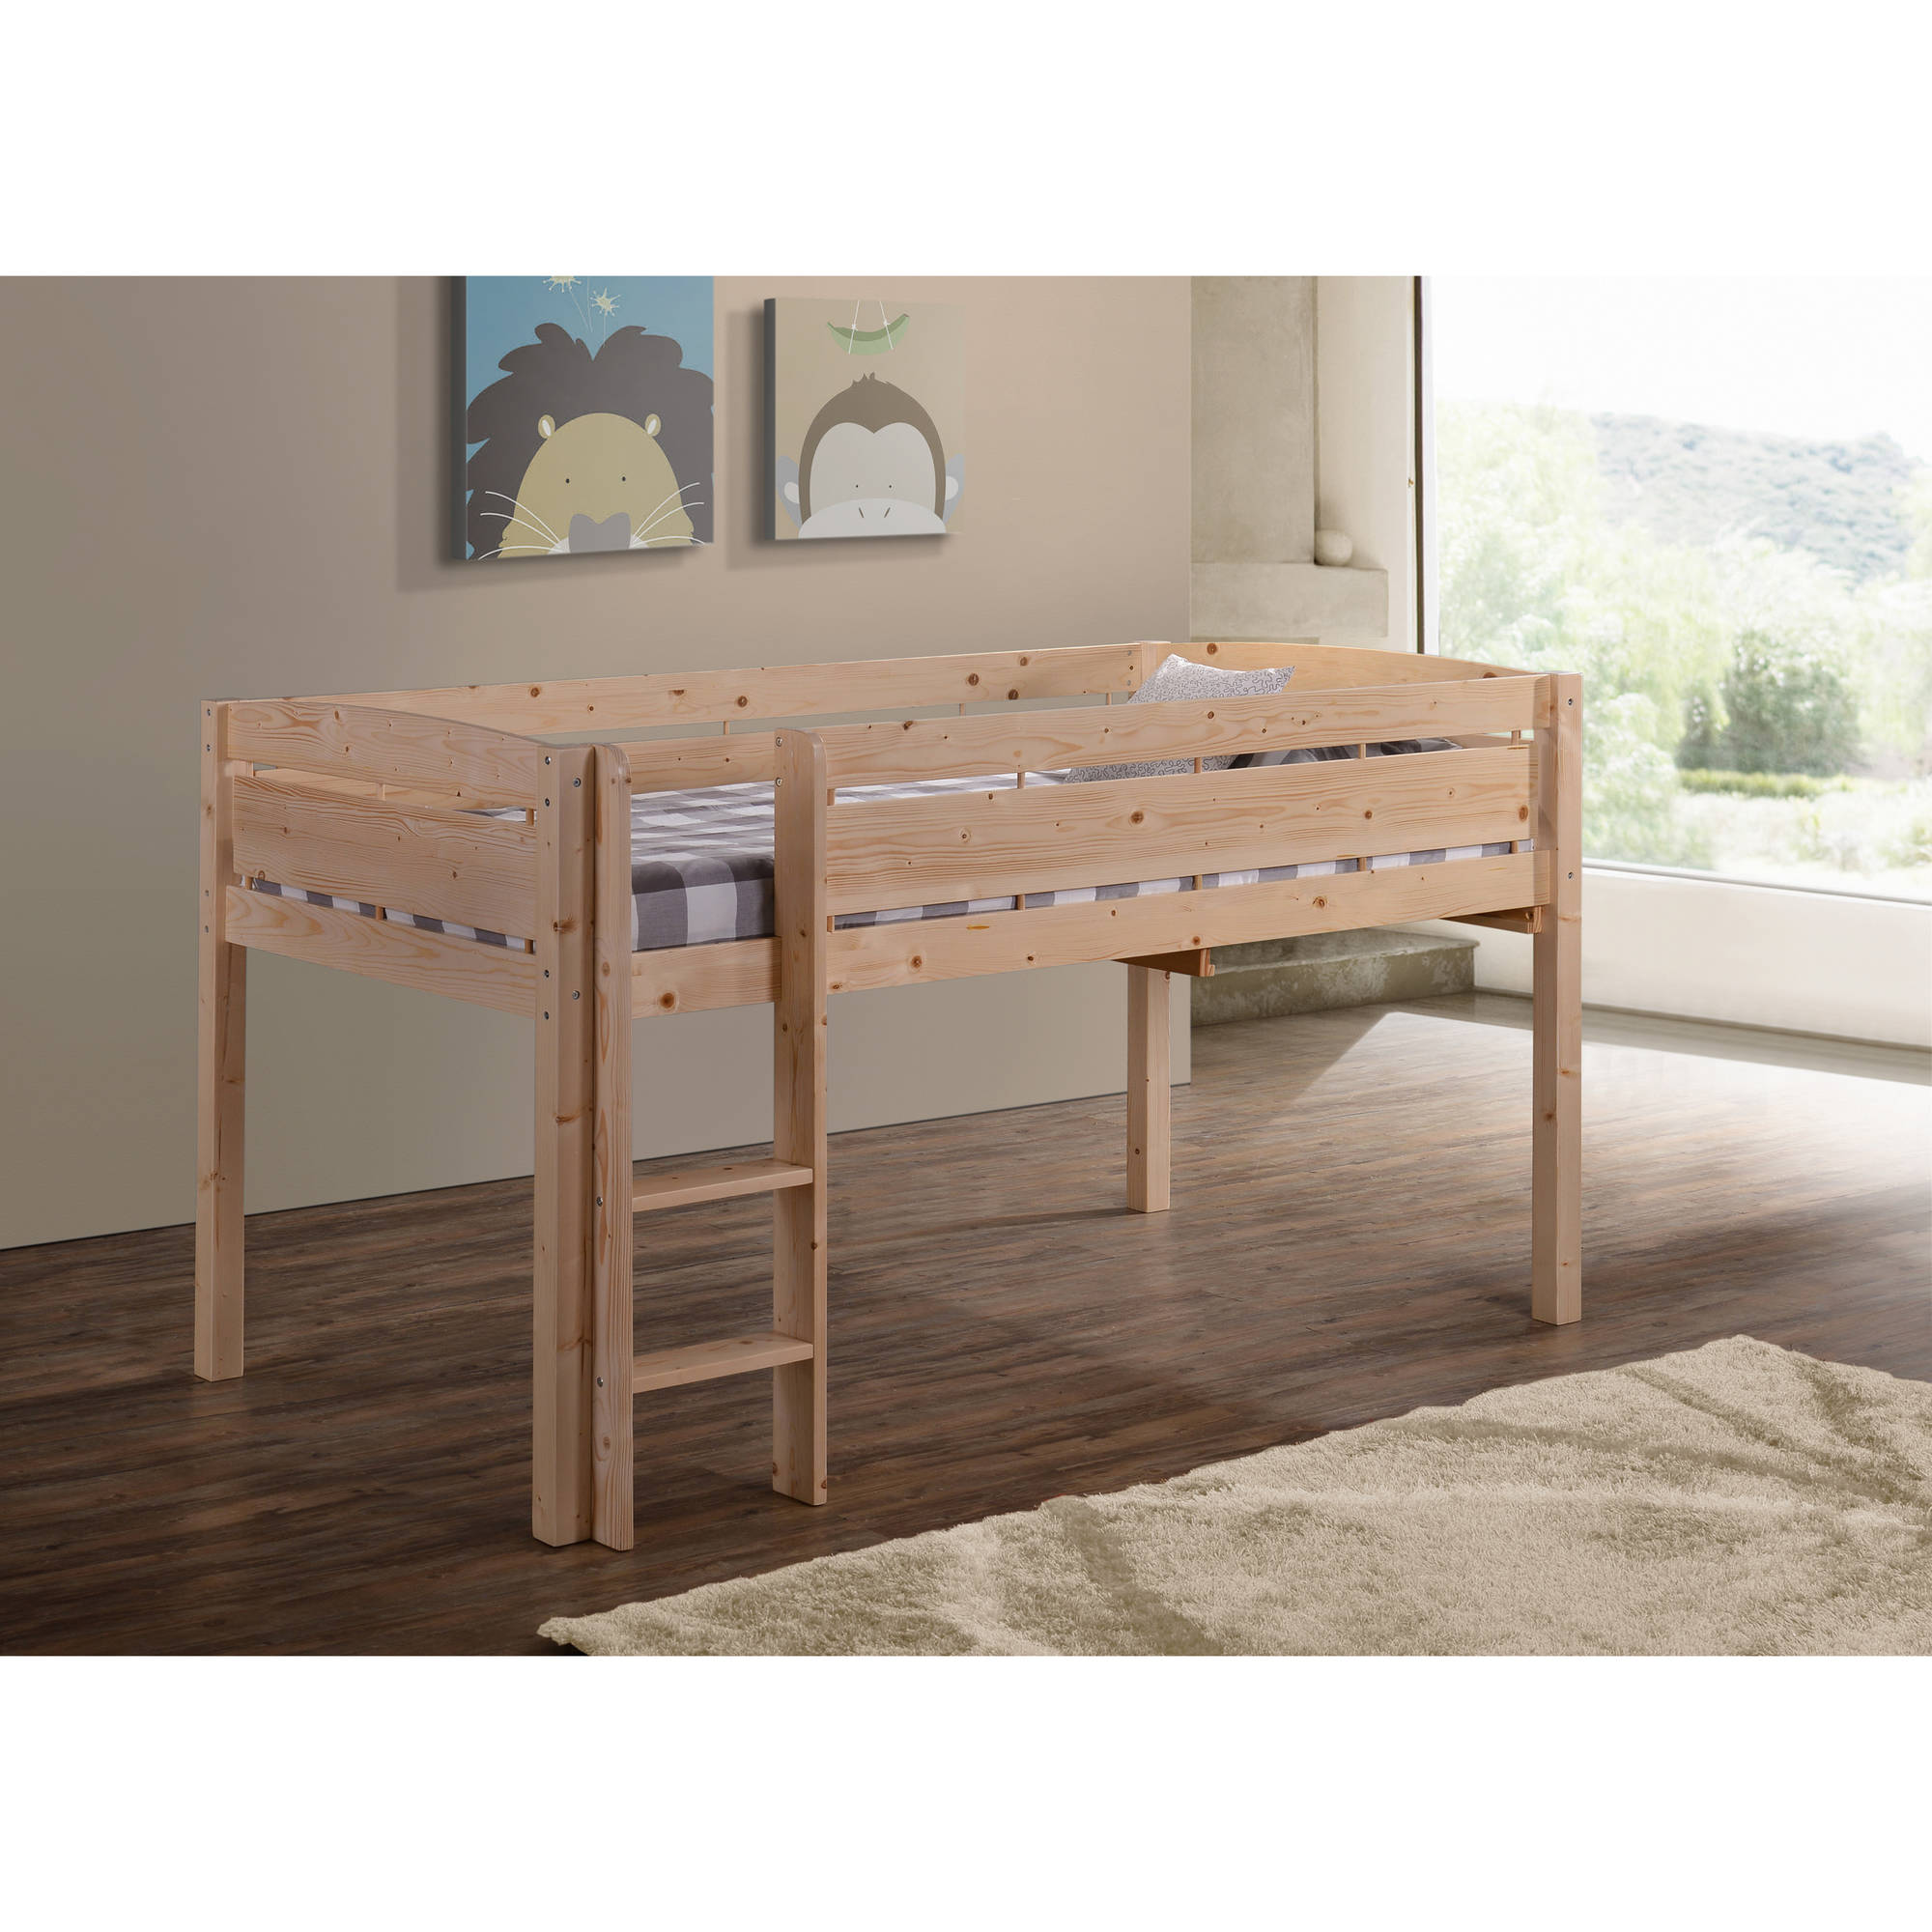 Canwood Whistler Junior Loft Bed, Natural